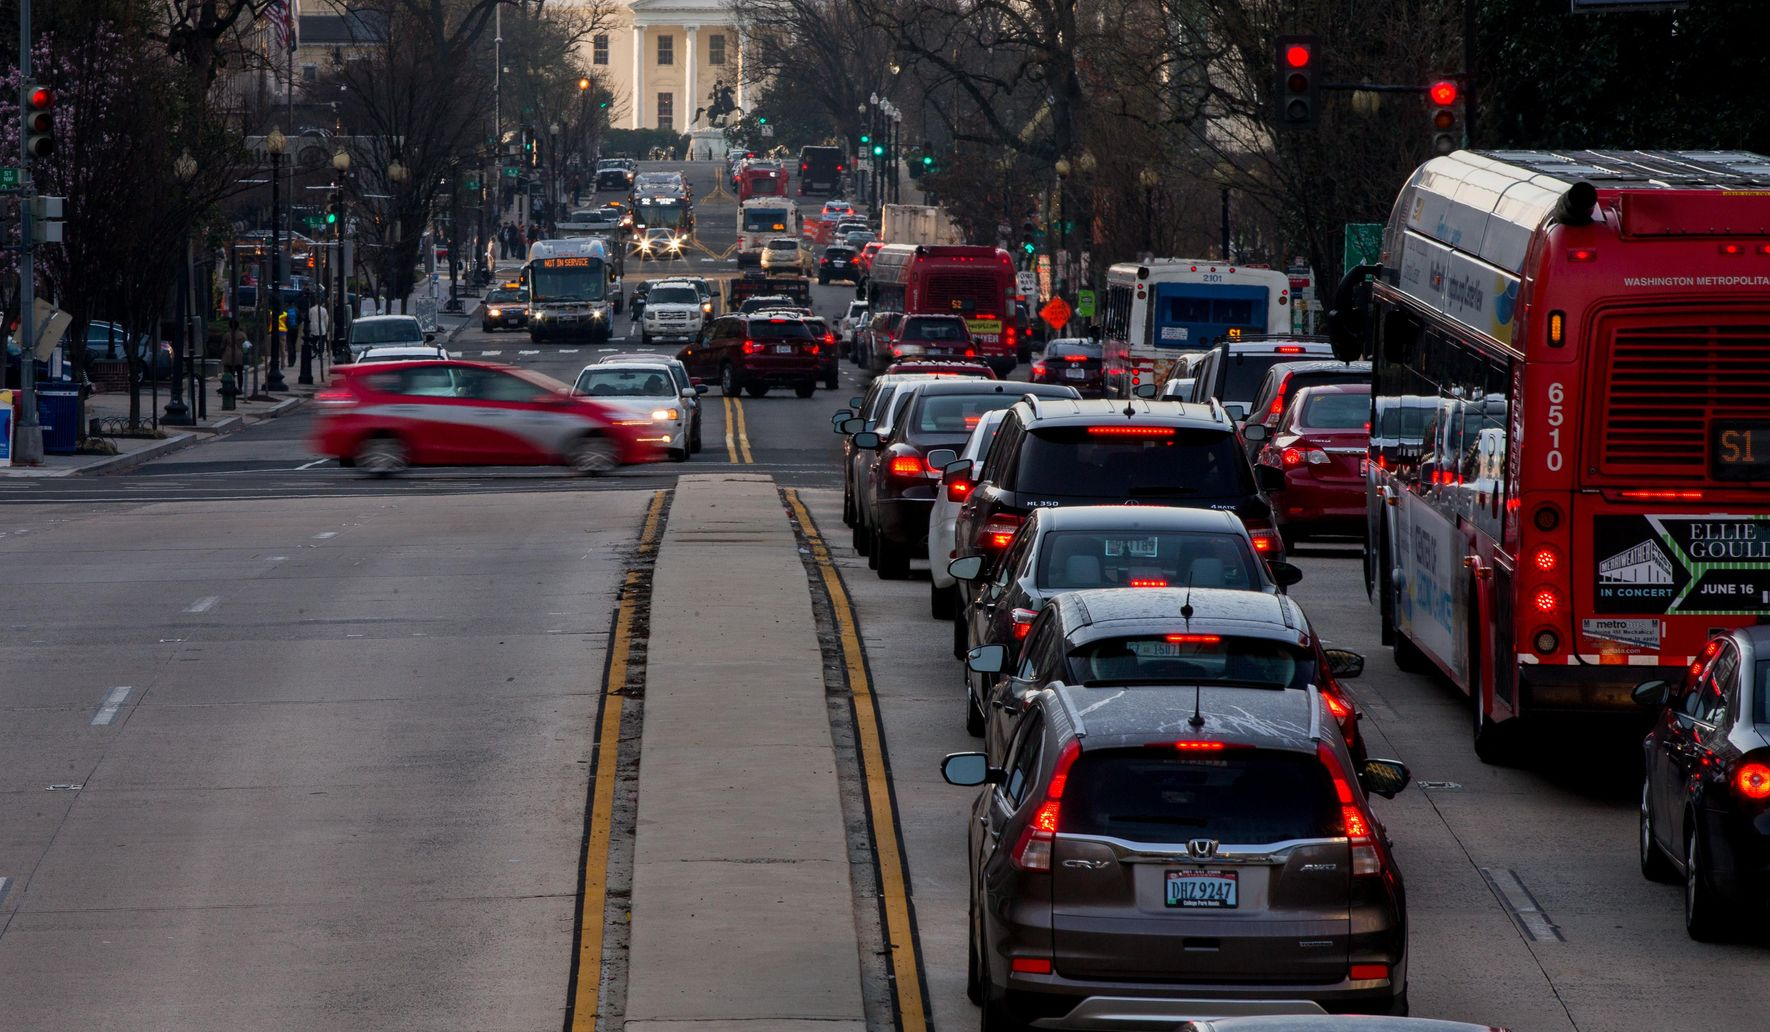 Speeding bus traffic means fixing, and enforcing, parking rules